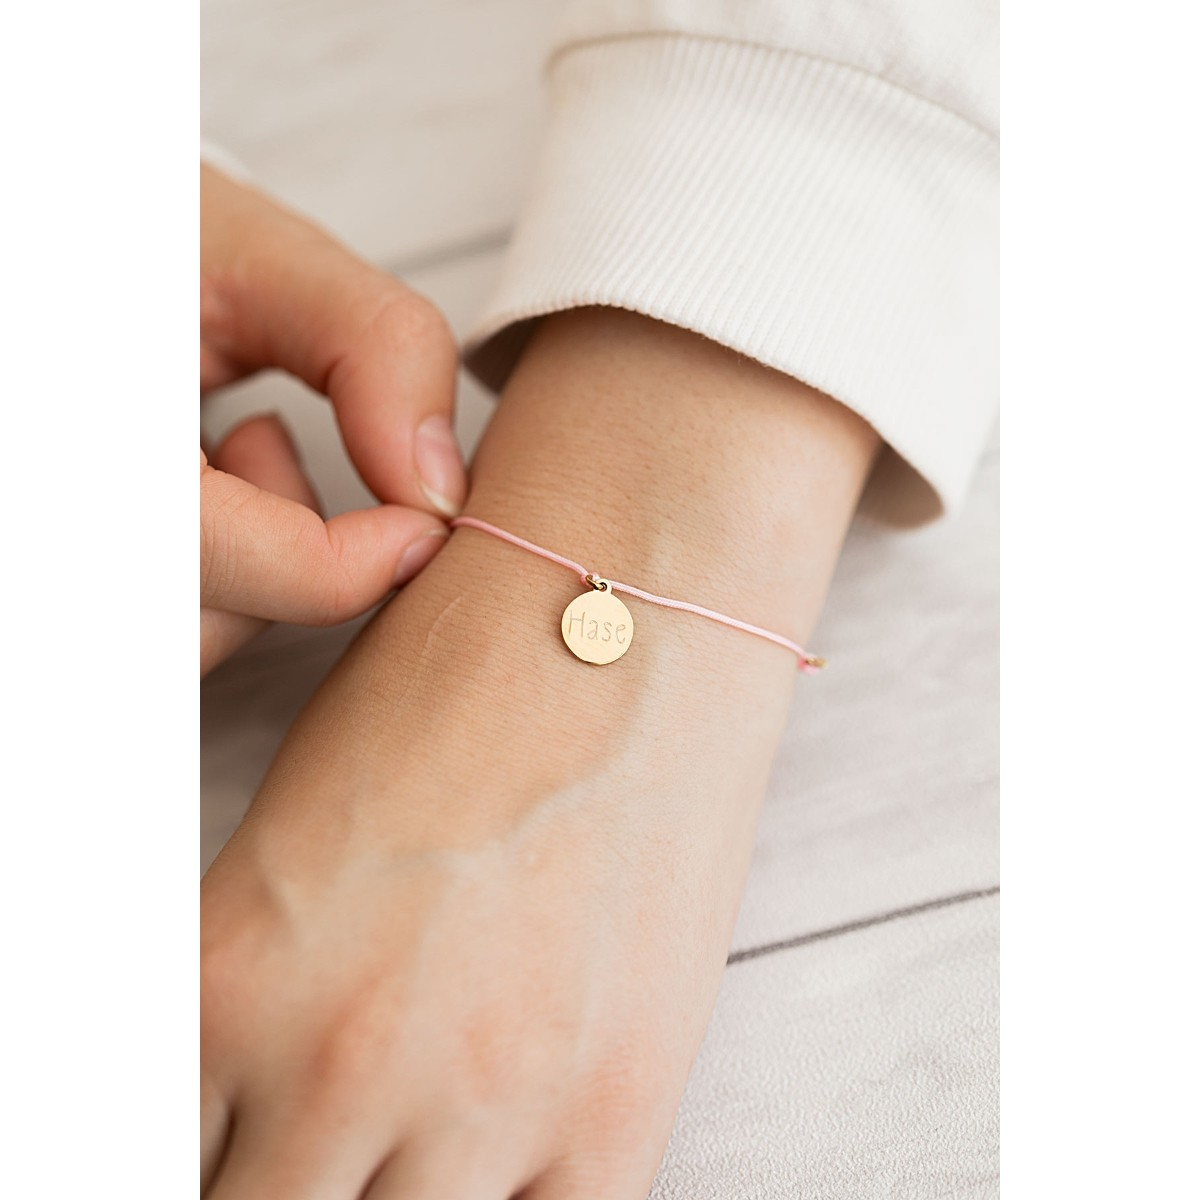 Oh Bracelet Berlin - Armband »Hase« Farbe Gold